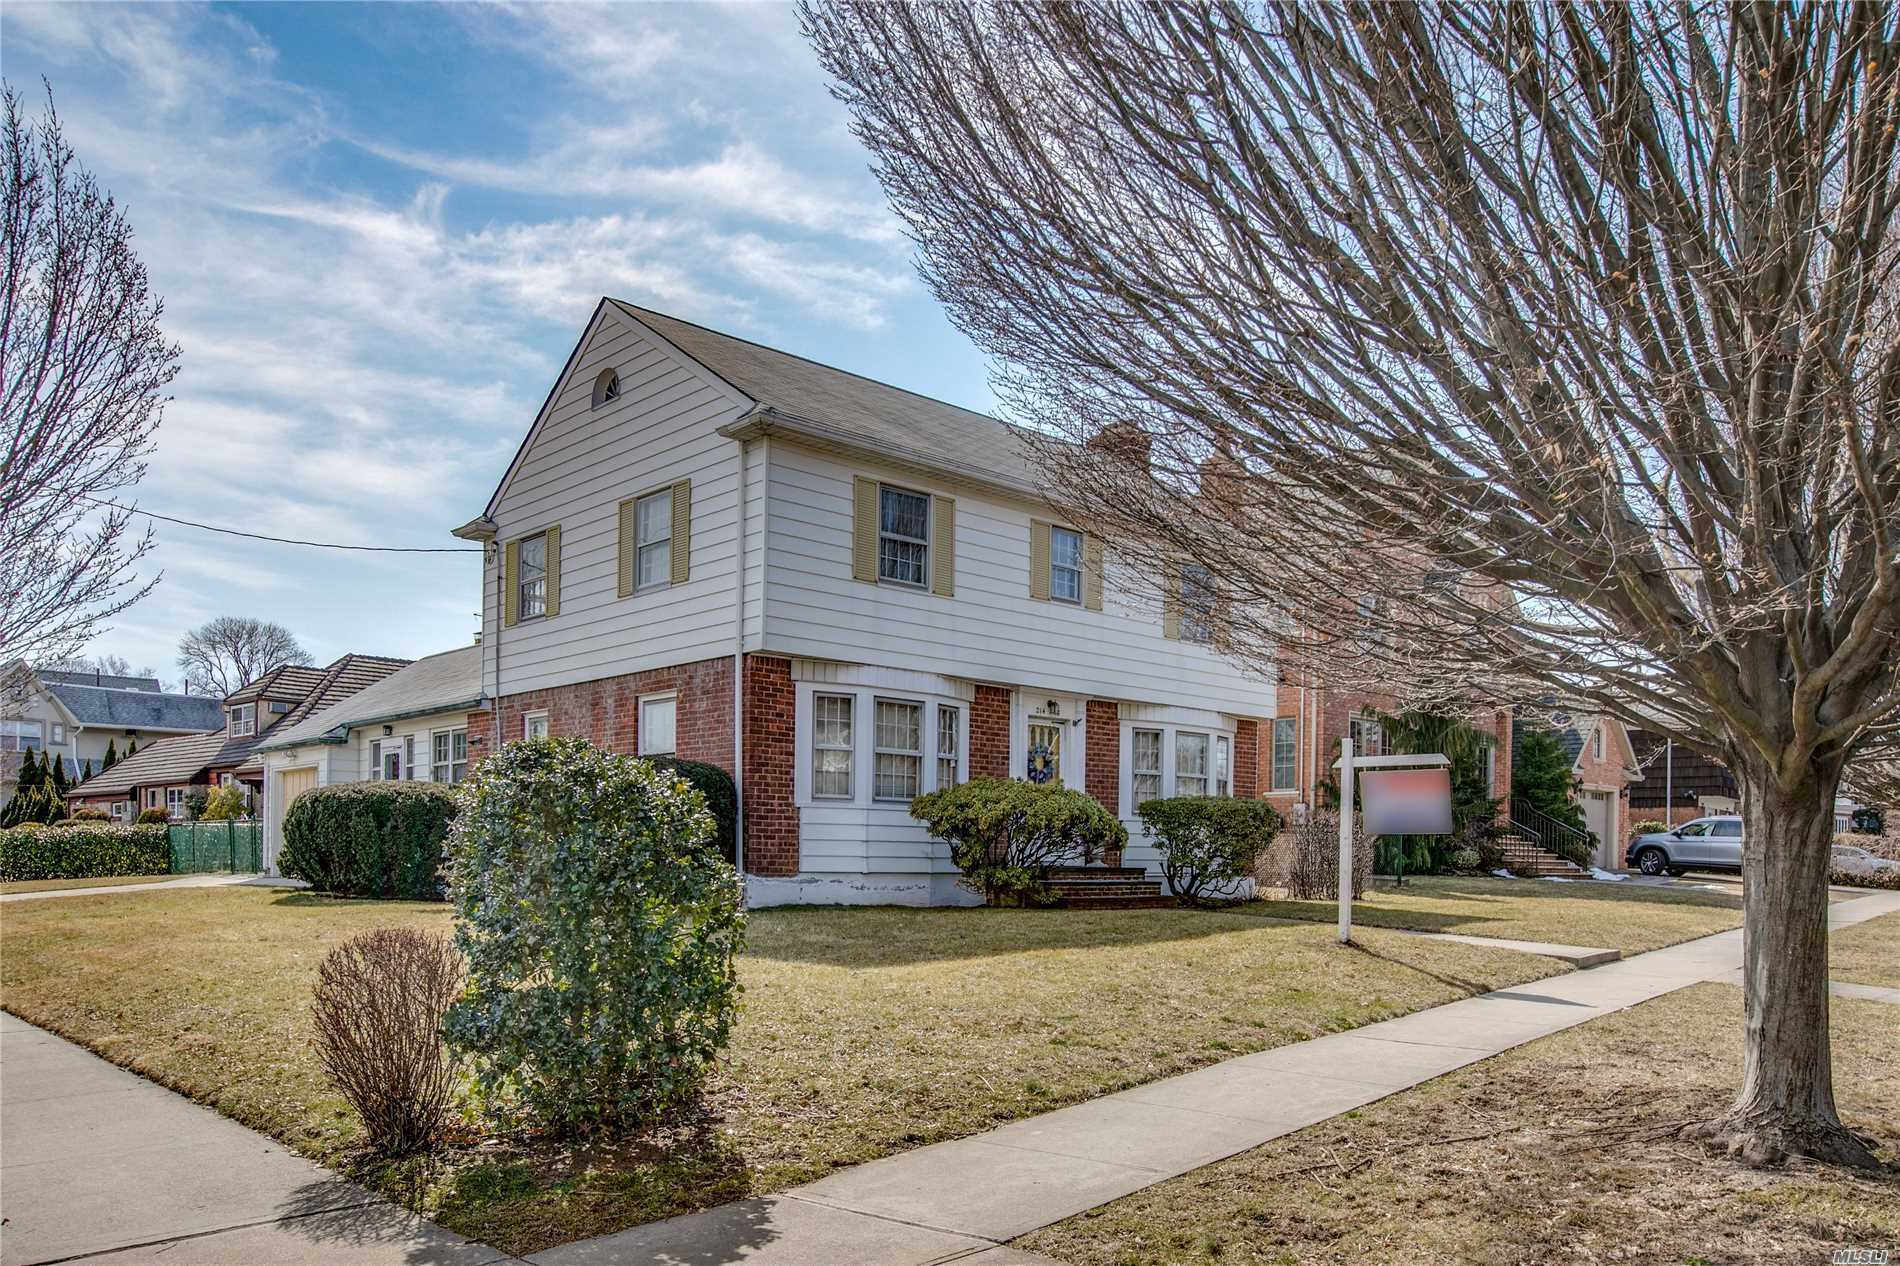 Classic Center Hall Colonial In Beautiful Weeks Woodland Of Bayside. Spacious Large Rooms With Hi Ceilings. Living Room Wood Burning Fireplace , Huge Formal Dining Room. Eik With Separate Butlers Pantry. Great Opportunity For Build Your Dream Mansion With 7500 Sqft Lot. . Location!!!Location!!!Location!!! Make This Unique property Your Dream Home.